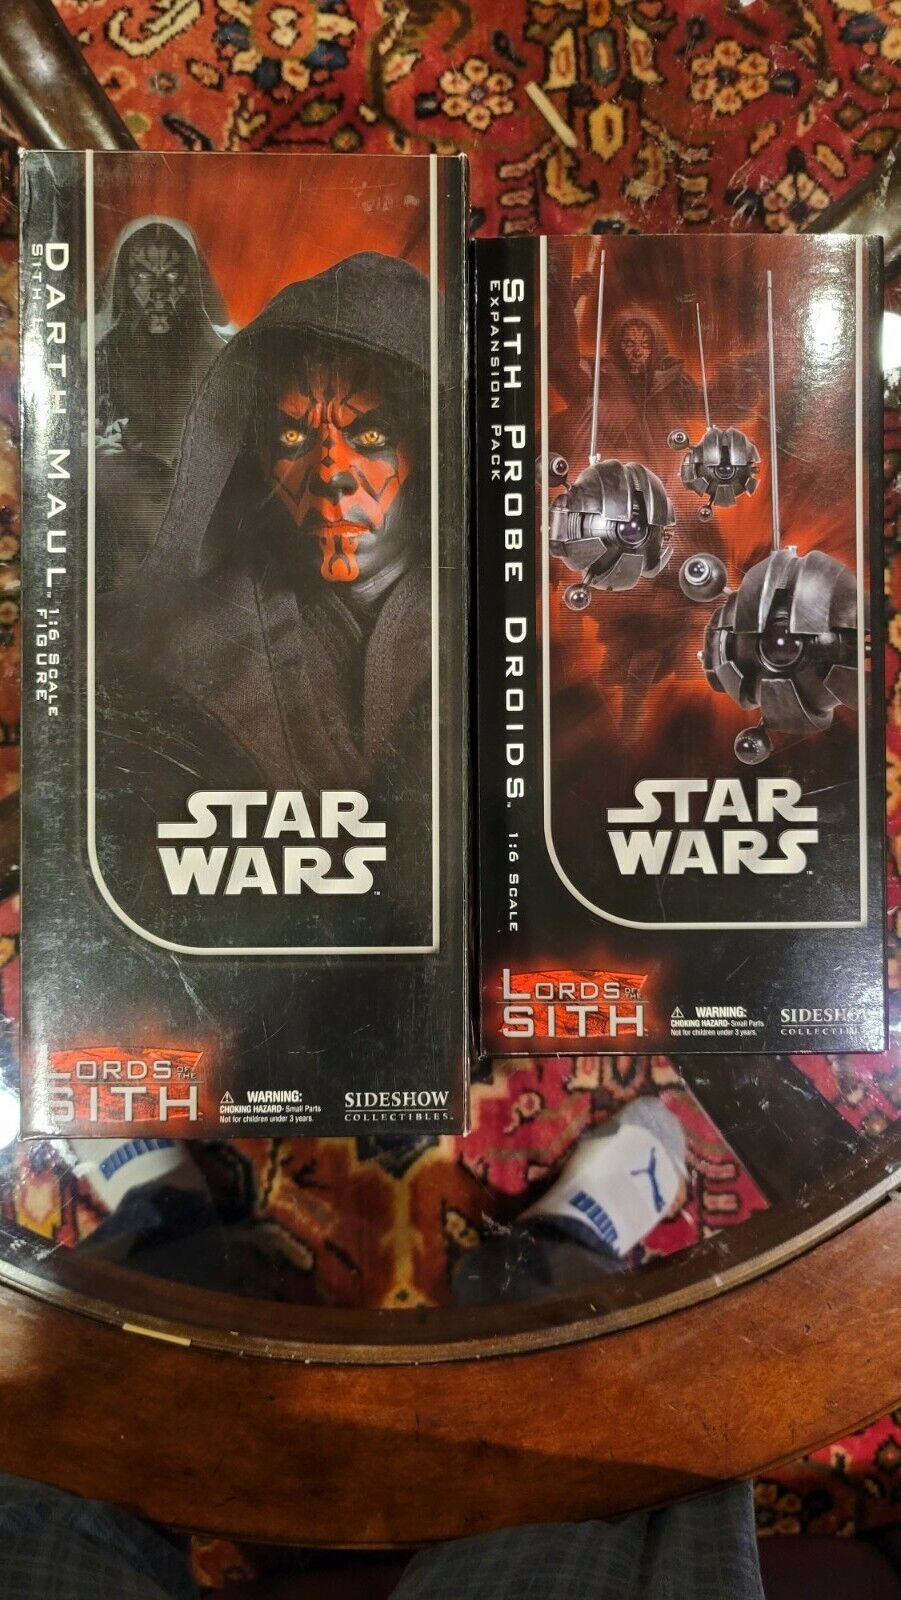 Sideshow Collectibles Star Wars Lords of the Sith Darth Maul 2006 + Probe Droids on eBay thumbnail